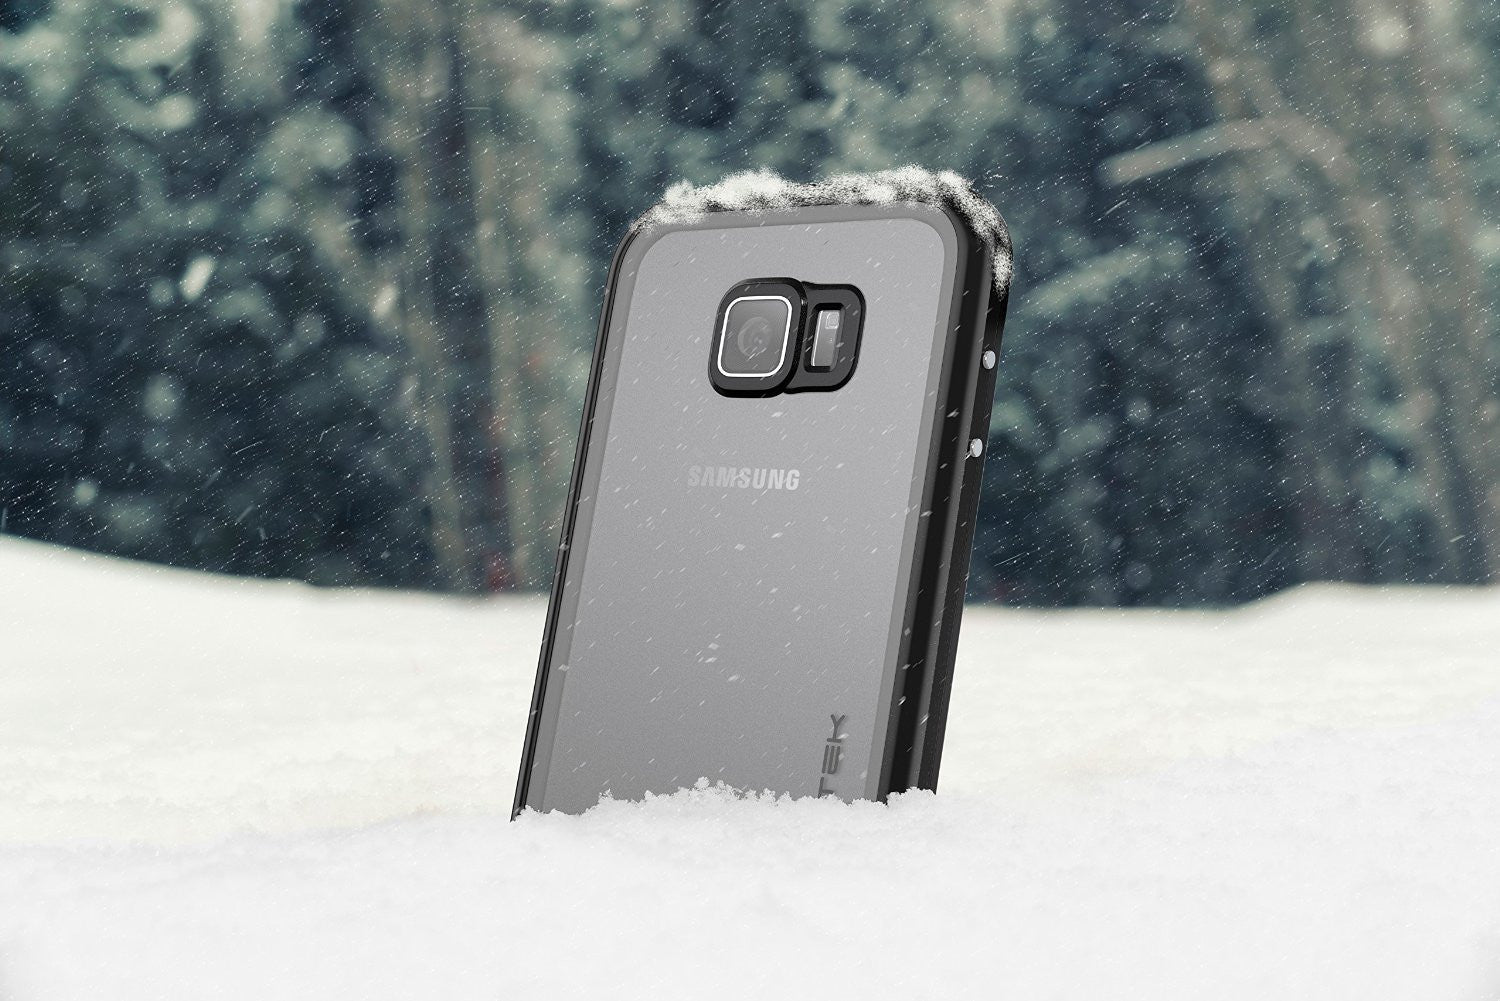 Galaxy S6 Waterproof Case, Ghostek Atomic 2.0 Silver Water/Shock/Dirt/Snow Proof | Lifetime Warranty